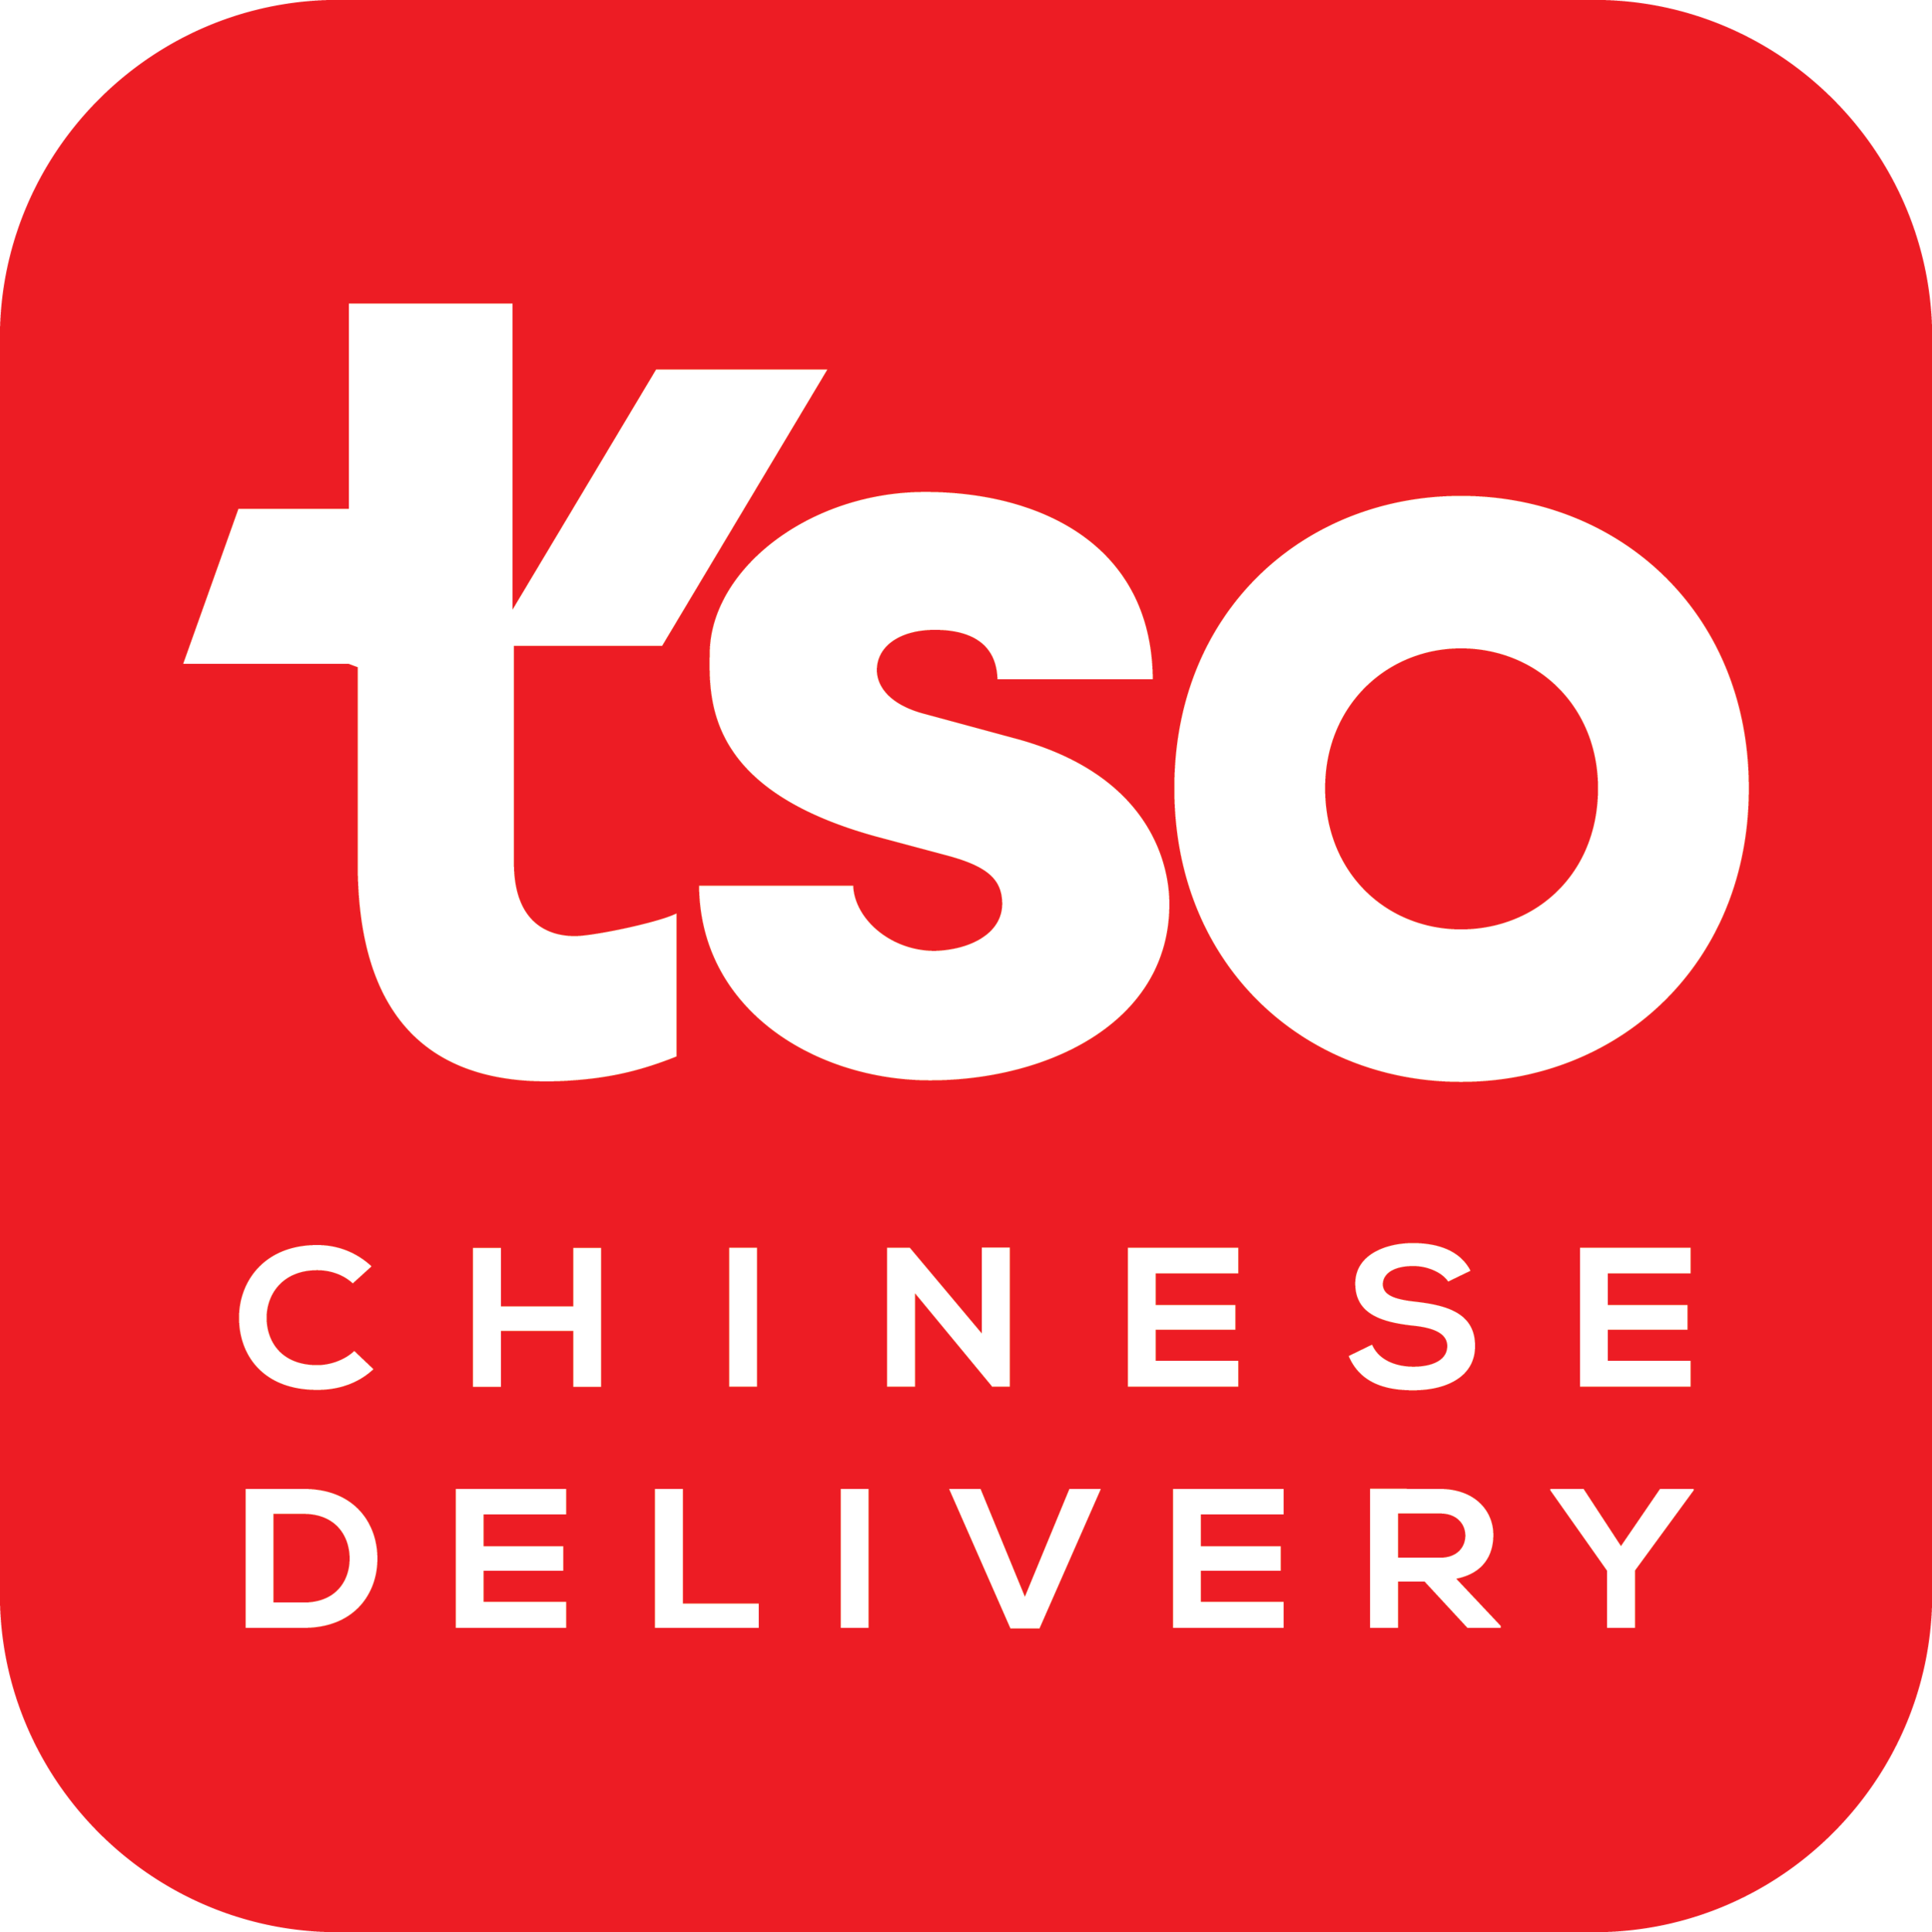 Tso_White_Logo_App_Square_Red_Background.png